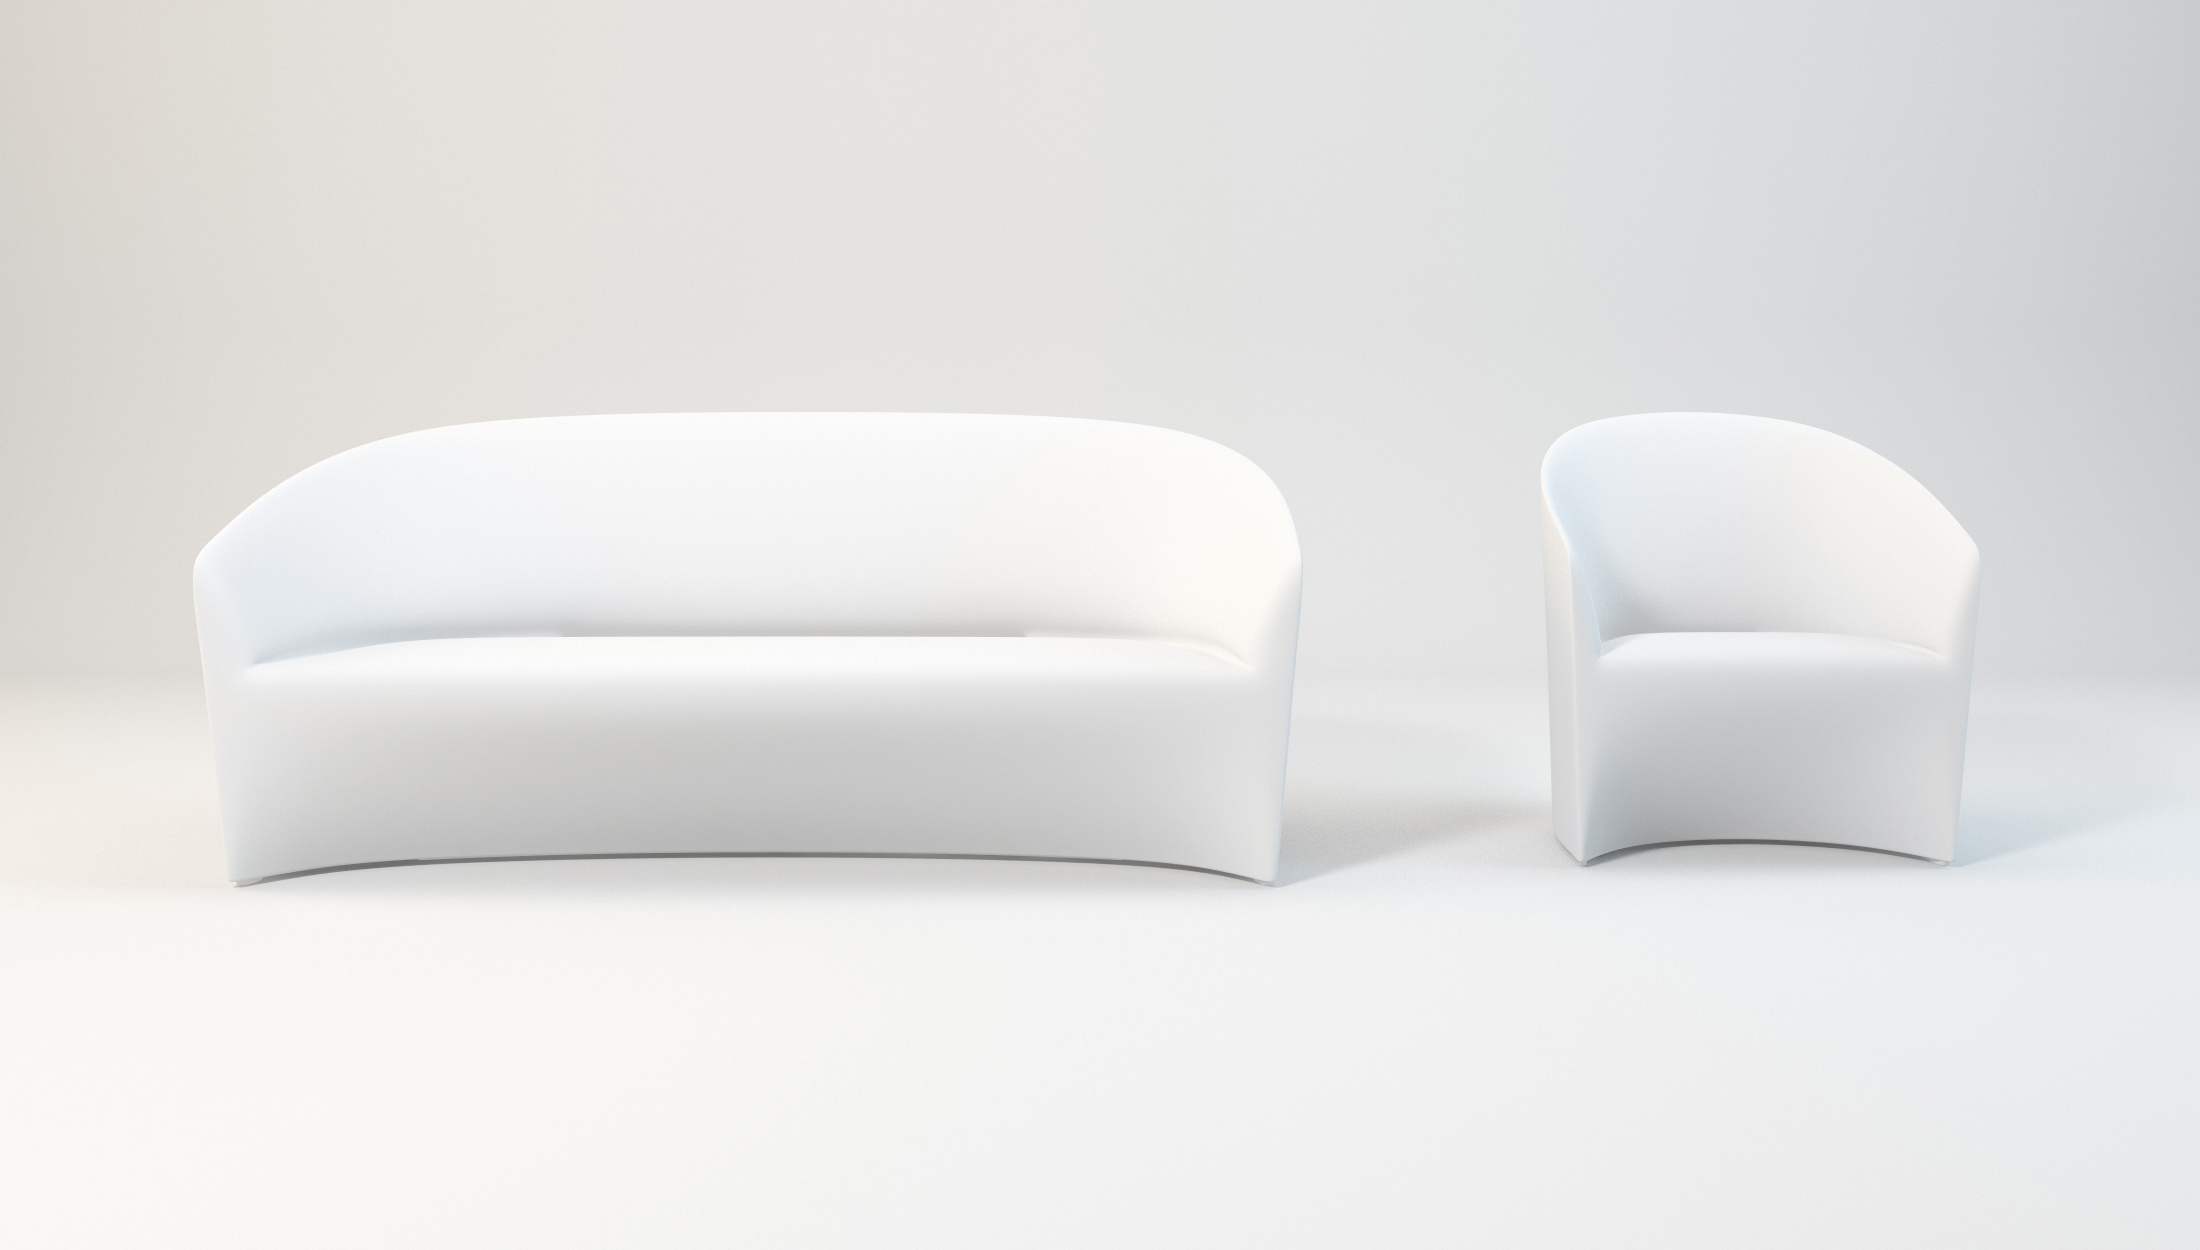 The Pine beach collection by Christophe Pillet.